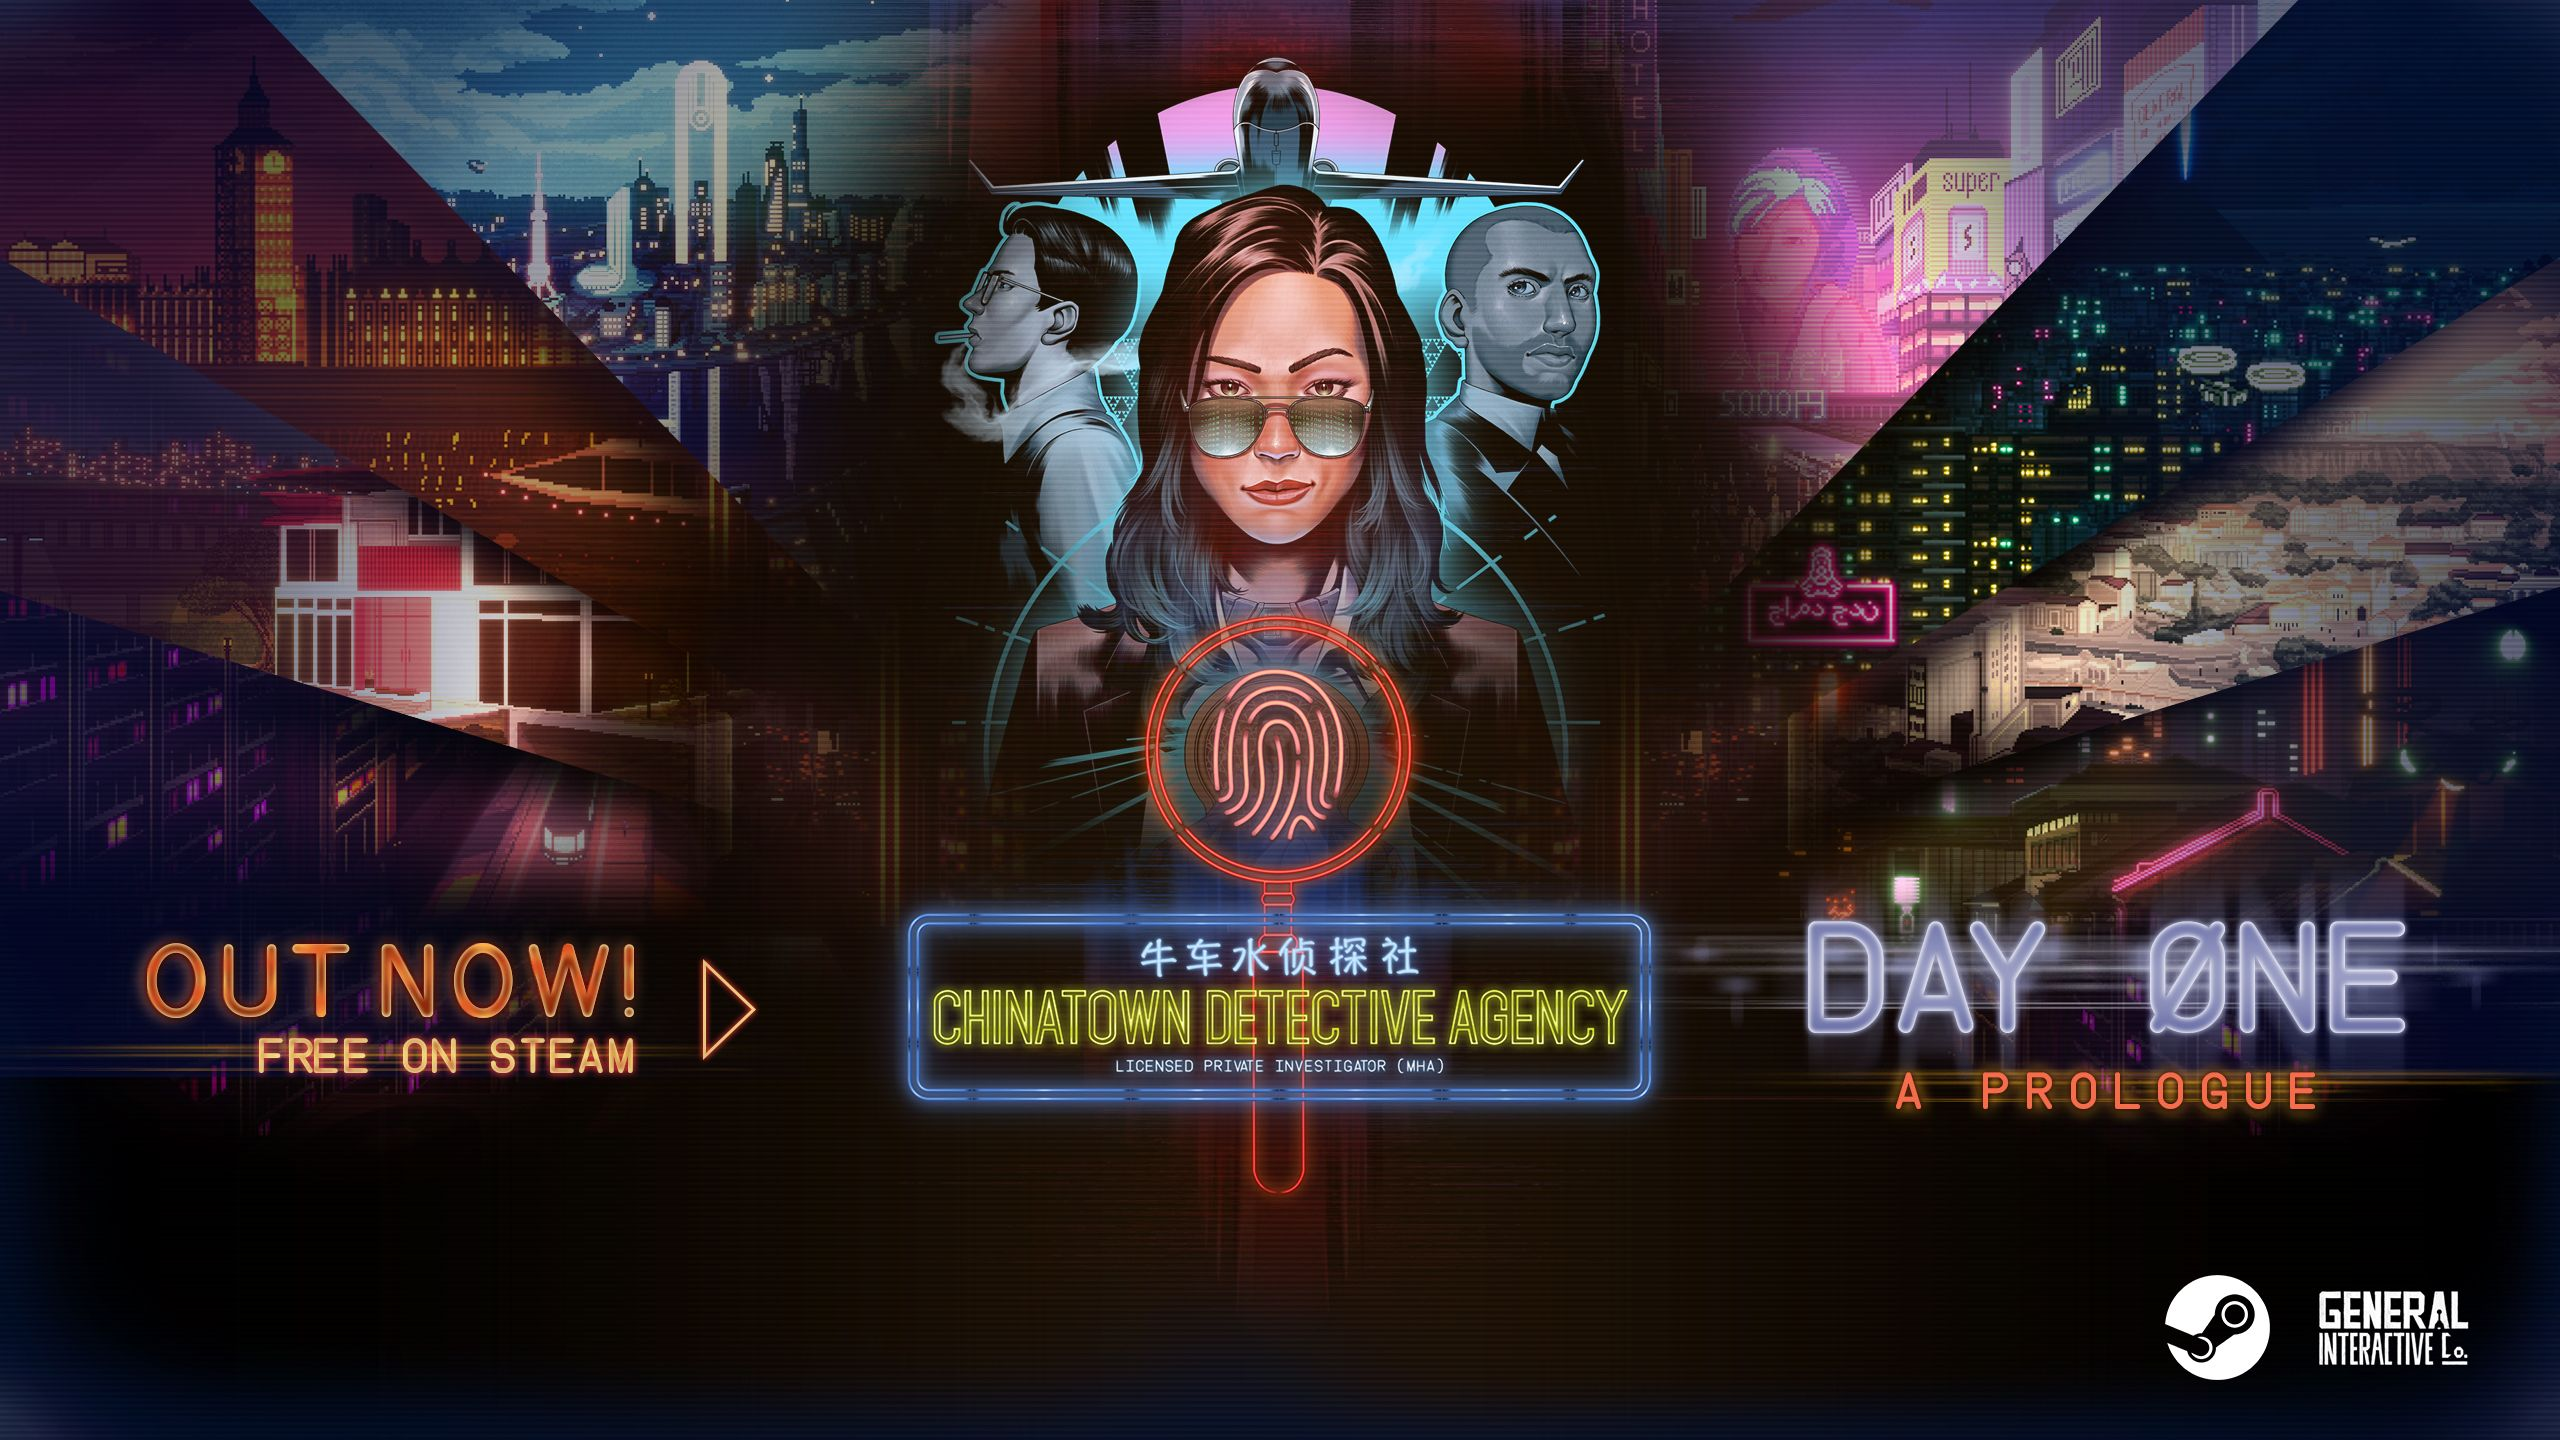 Chinatown Detective Agency: Day One logo